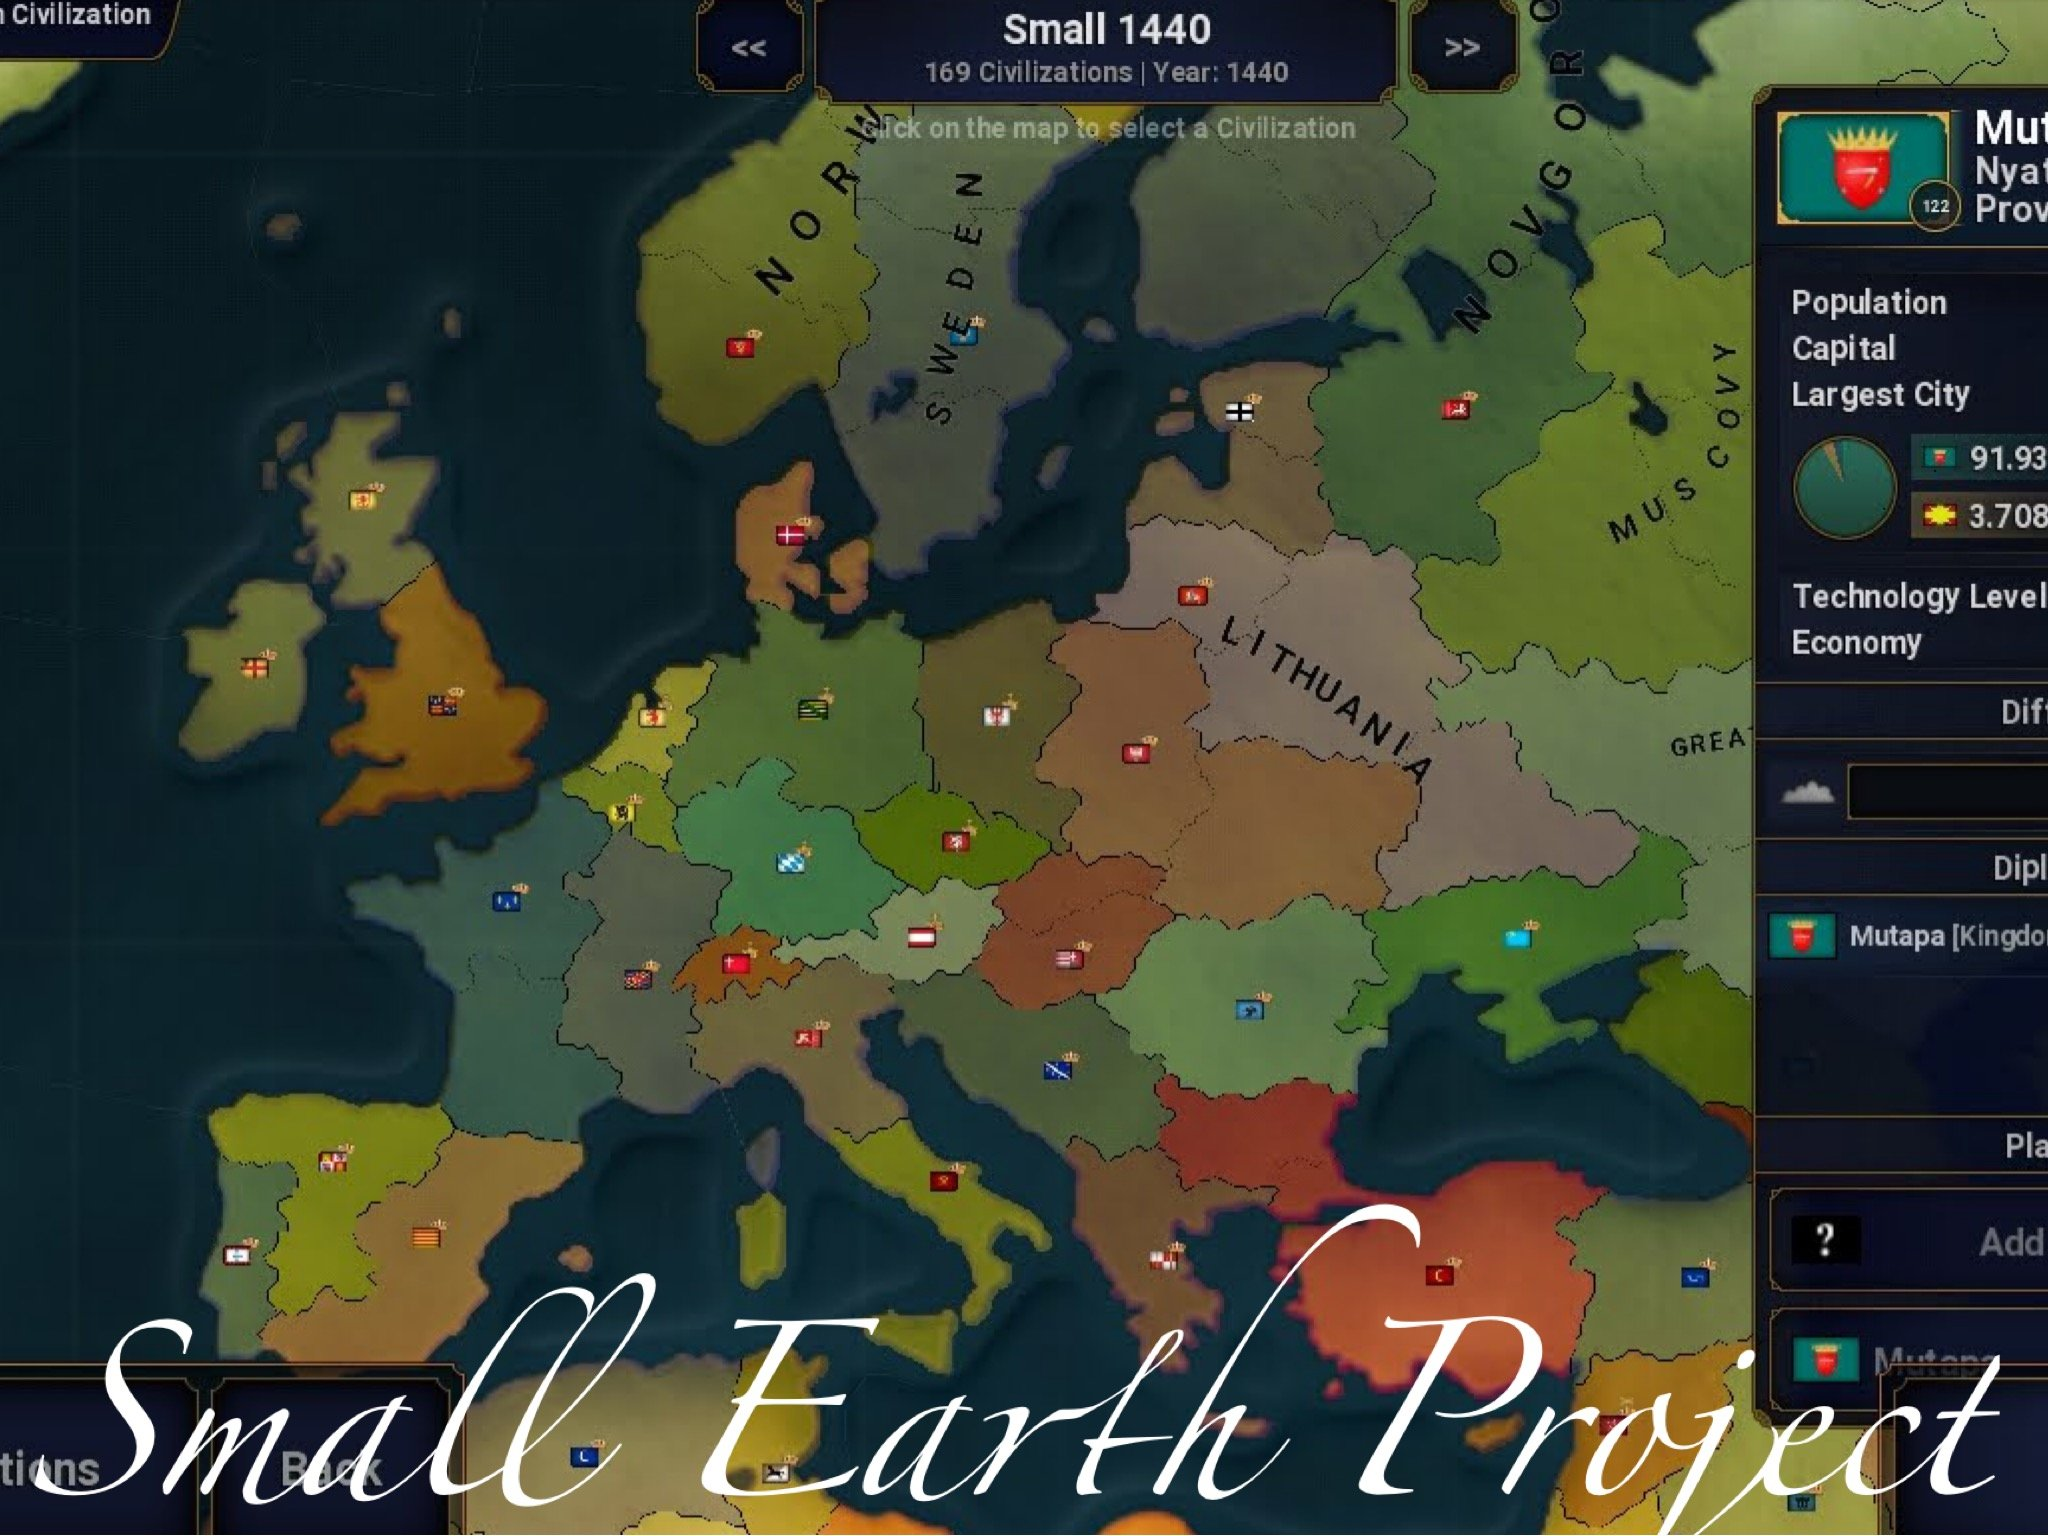 Small Earth Project